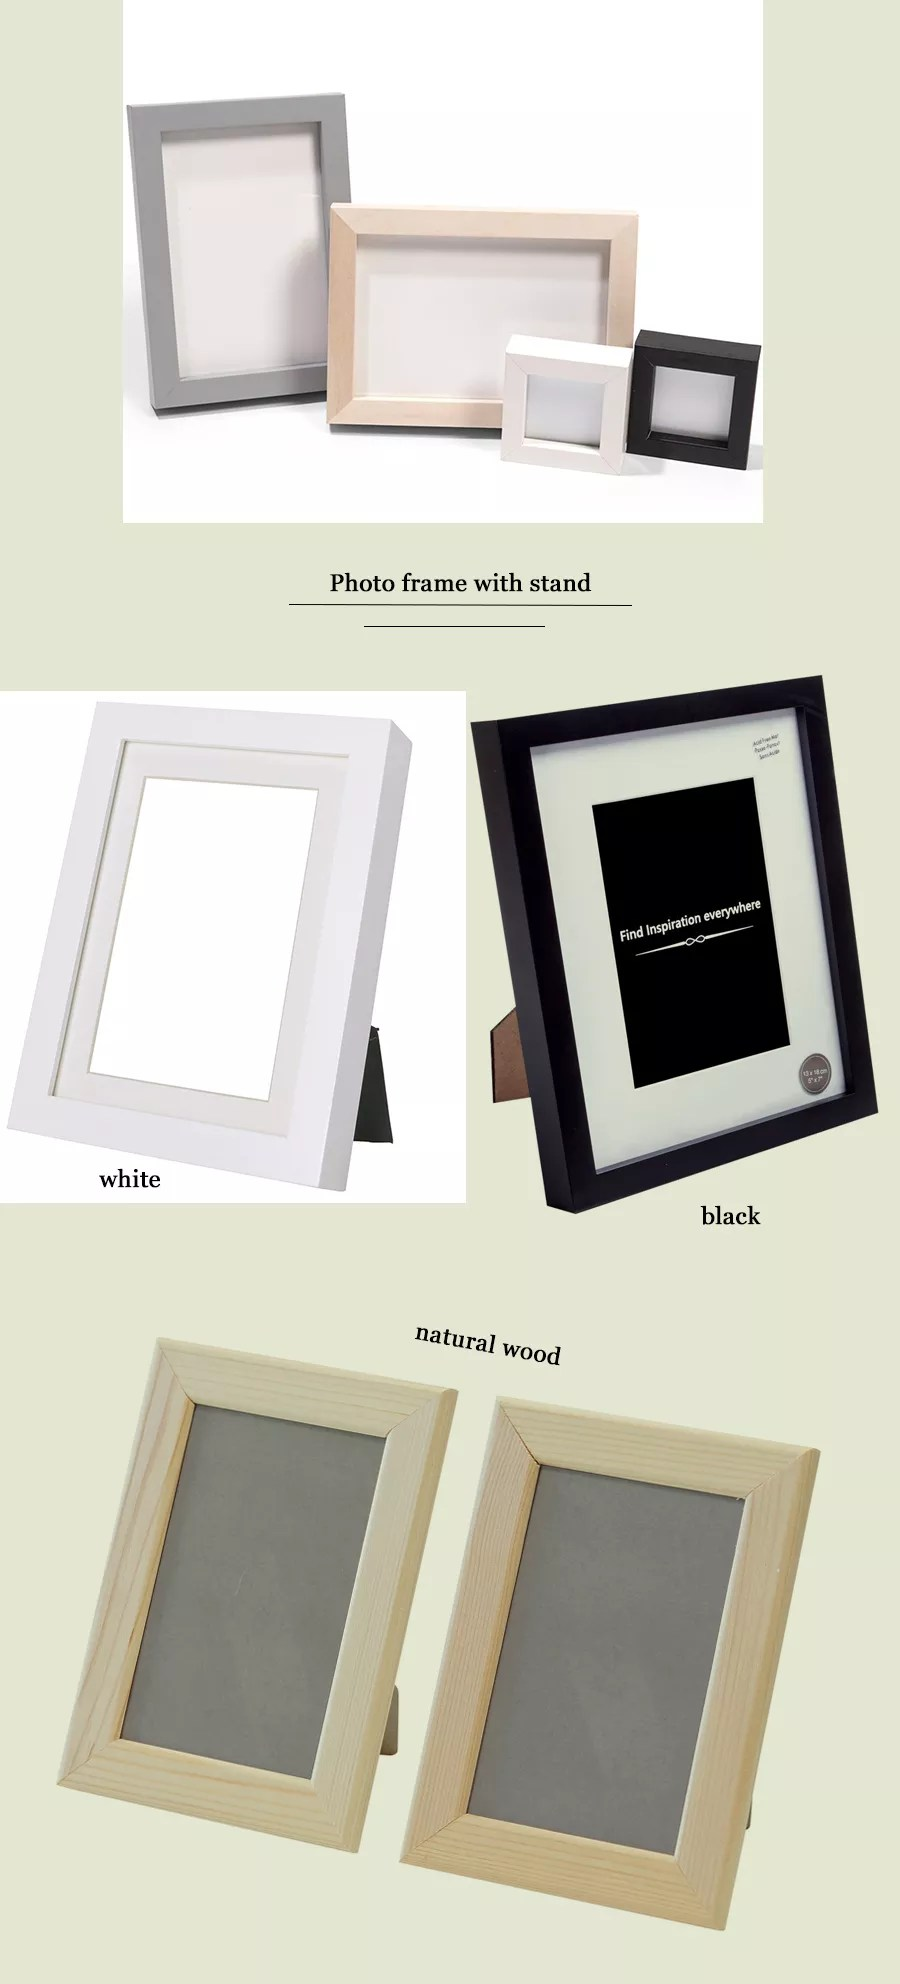 wholesale a1 a2 a3 a4 a5 4x6 5x7 6x8 8x10 11x14 12x16 12x18 16x20 18x24 20x28 24x36 black poster picture wood photo frames buy picture frame bulk